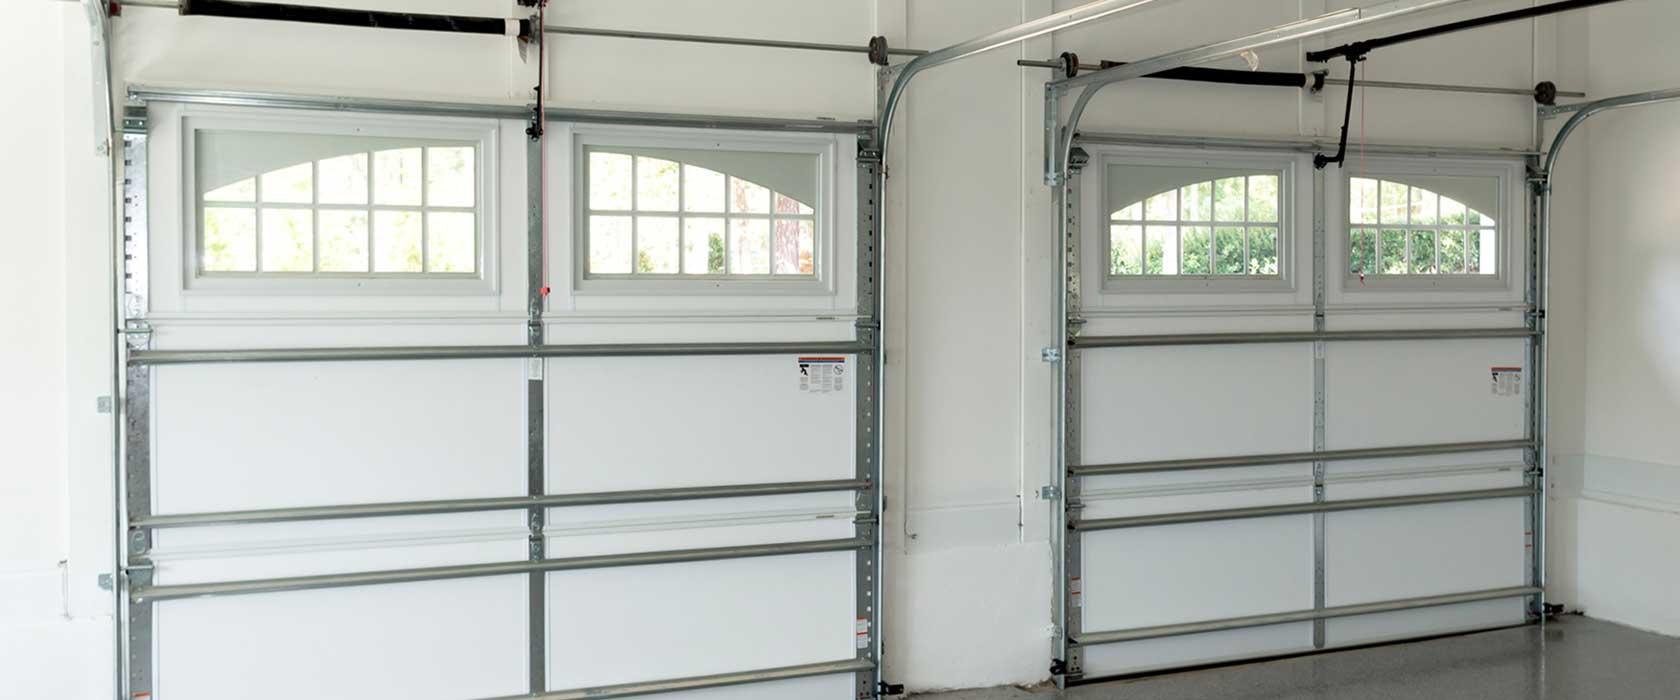 Best Garage Door Service in Lake Zurich, IL